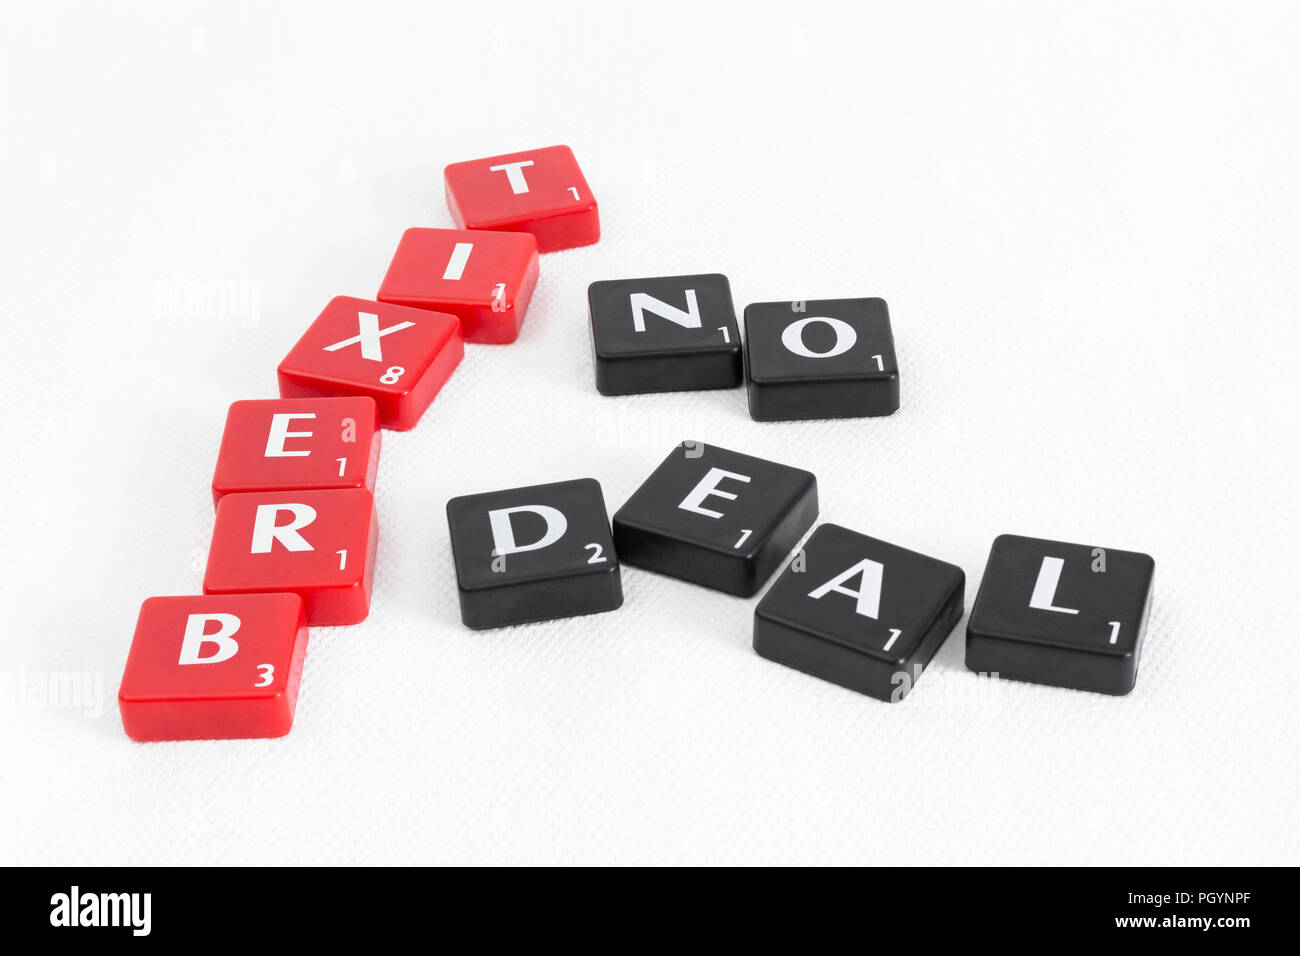 BREXIT / Brexit negotiations end game - deal or no deal? Letter tiles on textured neutral backdrop. EU UK relationship concept. Stock Photo